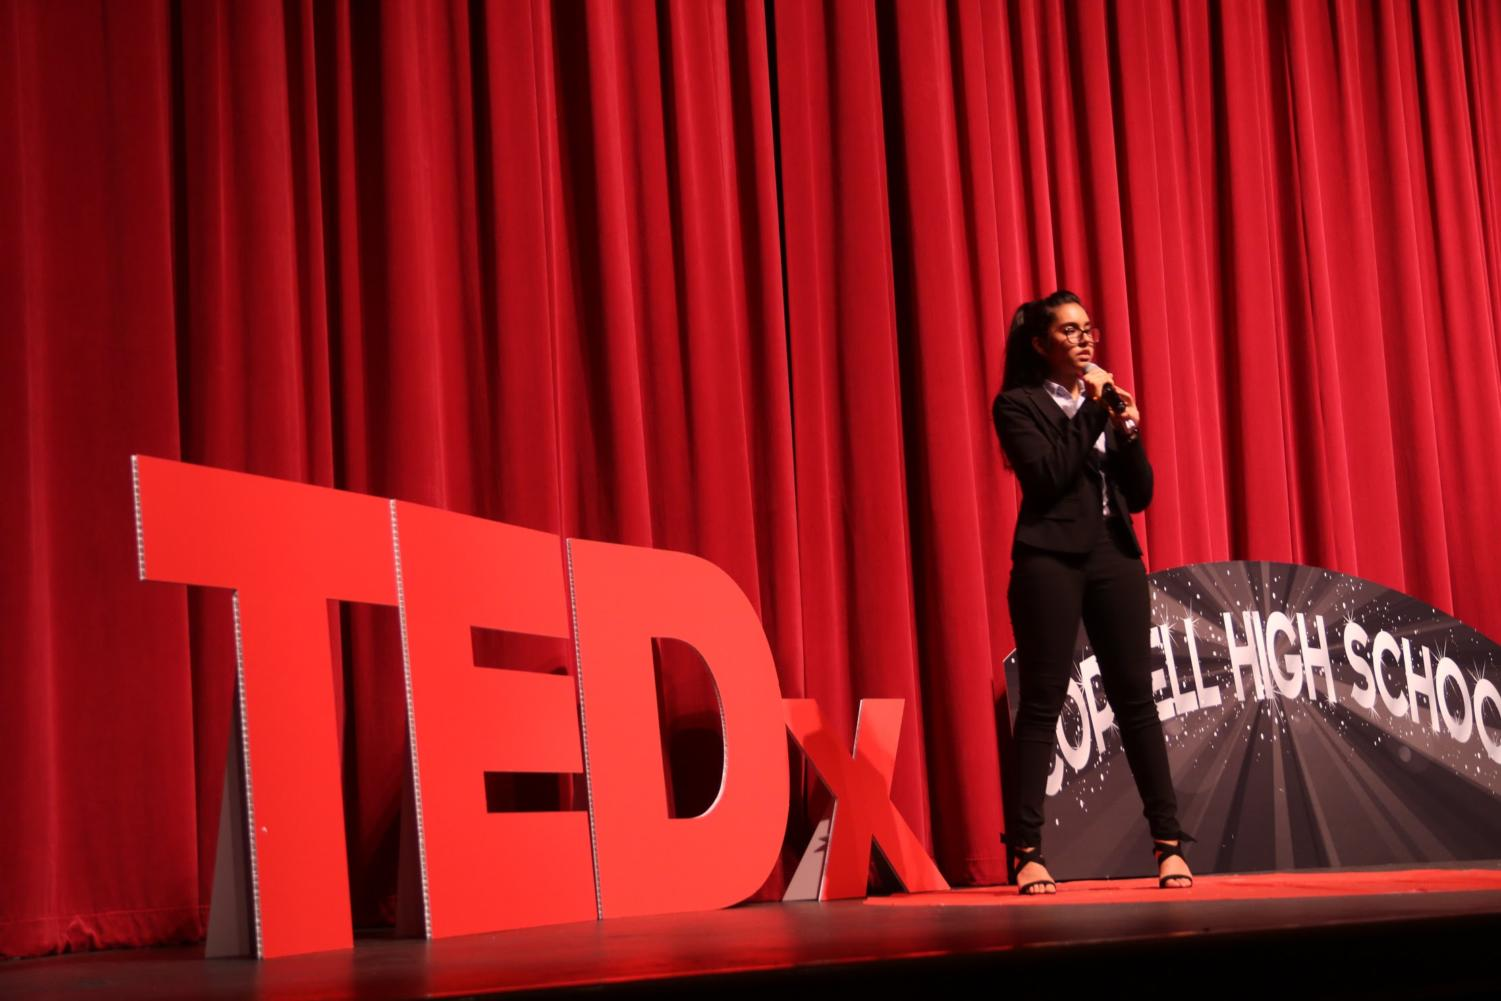 """Coppell High School senior Aditi Mutagi discusses the burning of the Amazon rainforest during her TedxYouth Talk at CHS on Wednesday night. The event's theme was """"the world reimagined"""", and speech topics ranged from showing gratitude to social media addiction."""